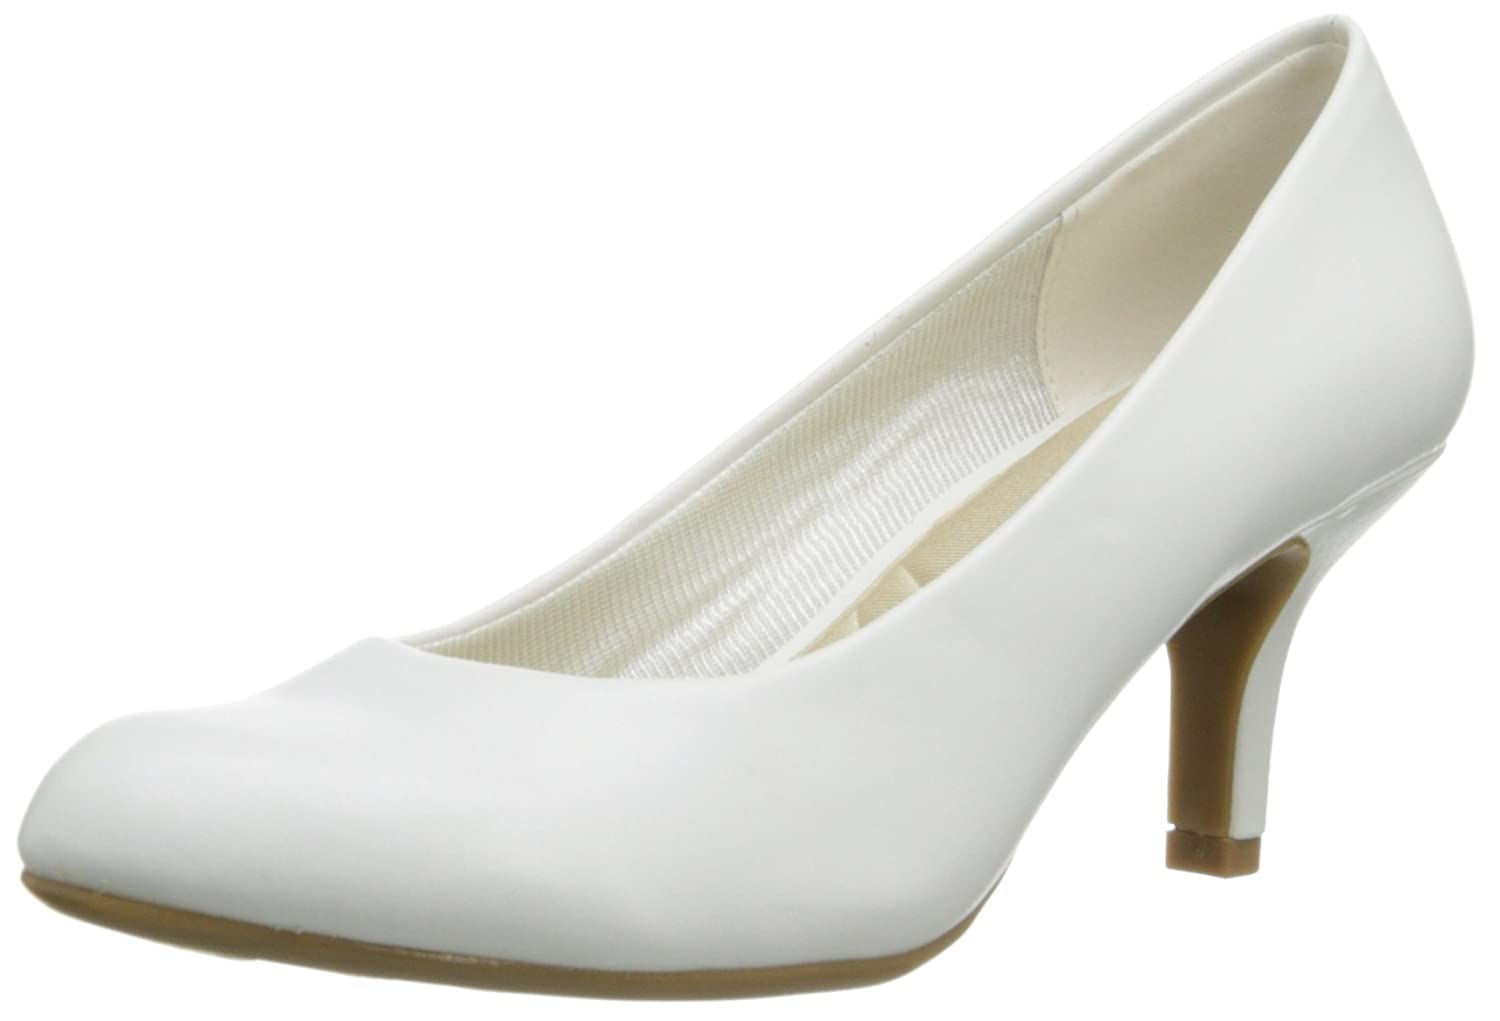 Easy Street Women's Passion Dress Pump B00G0KZ68K 9 N US|White